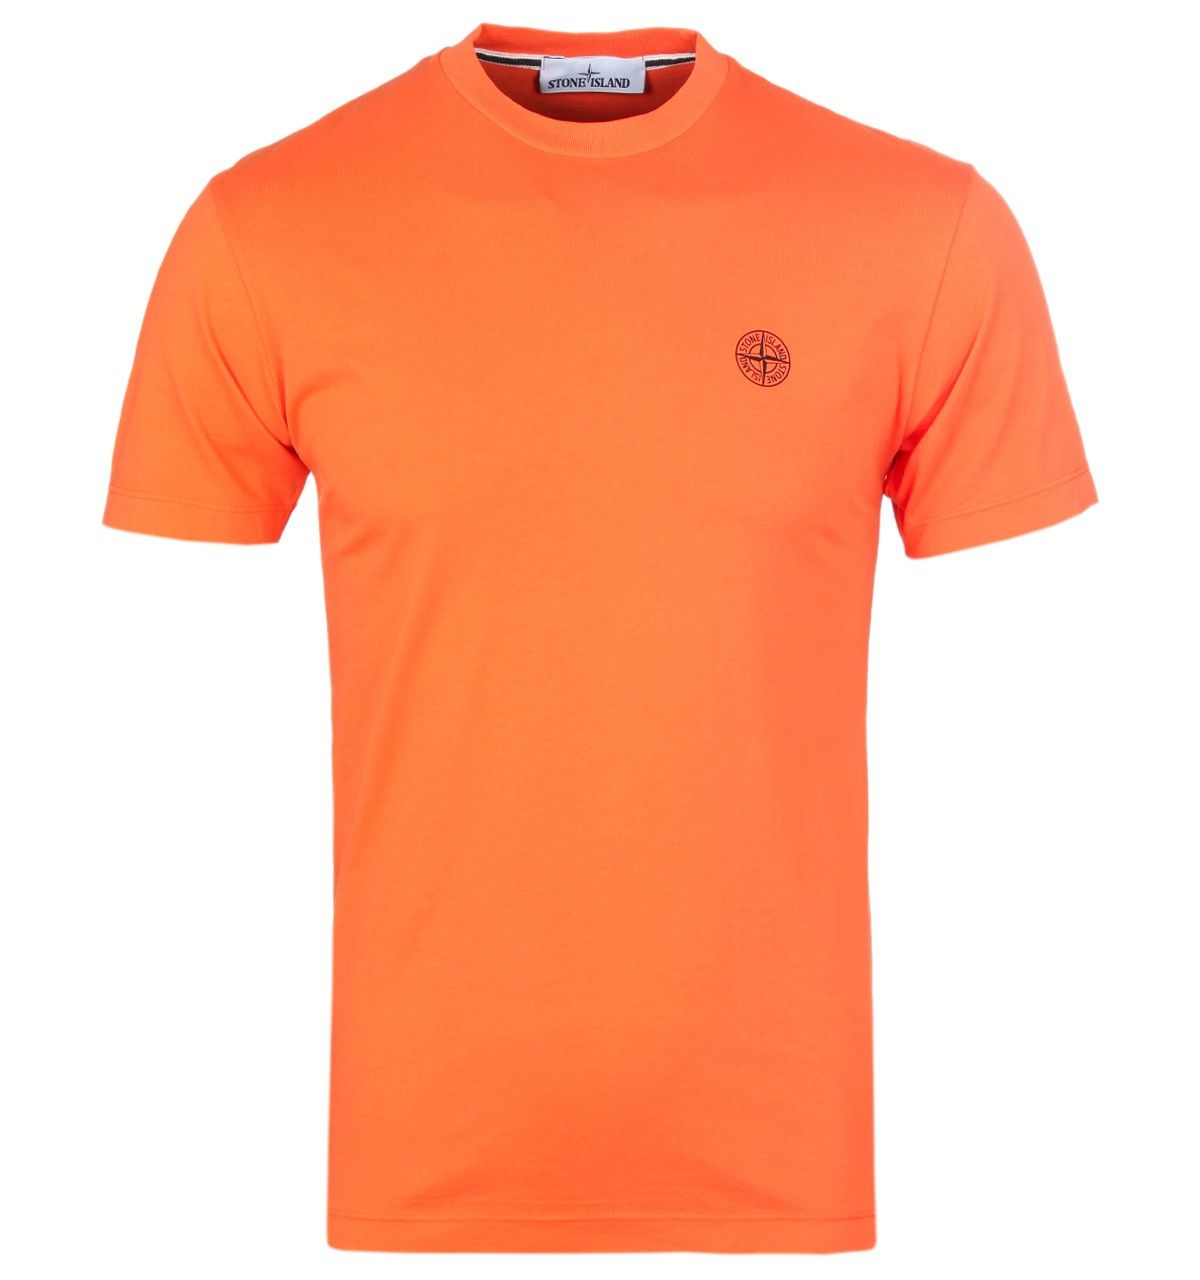 Stone island orange crew neck tshirt mens fashion casual wear